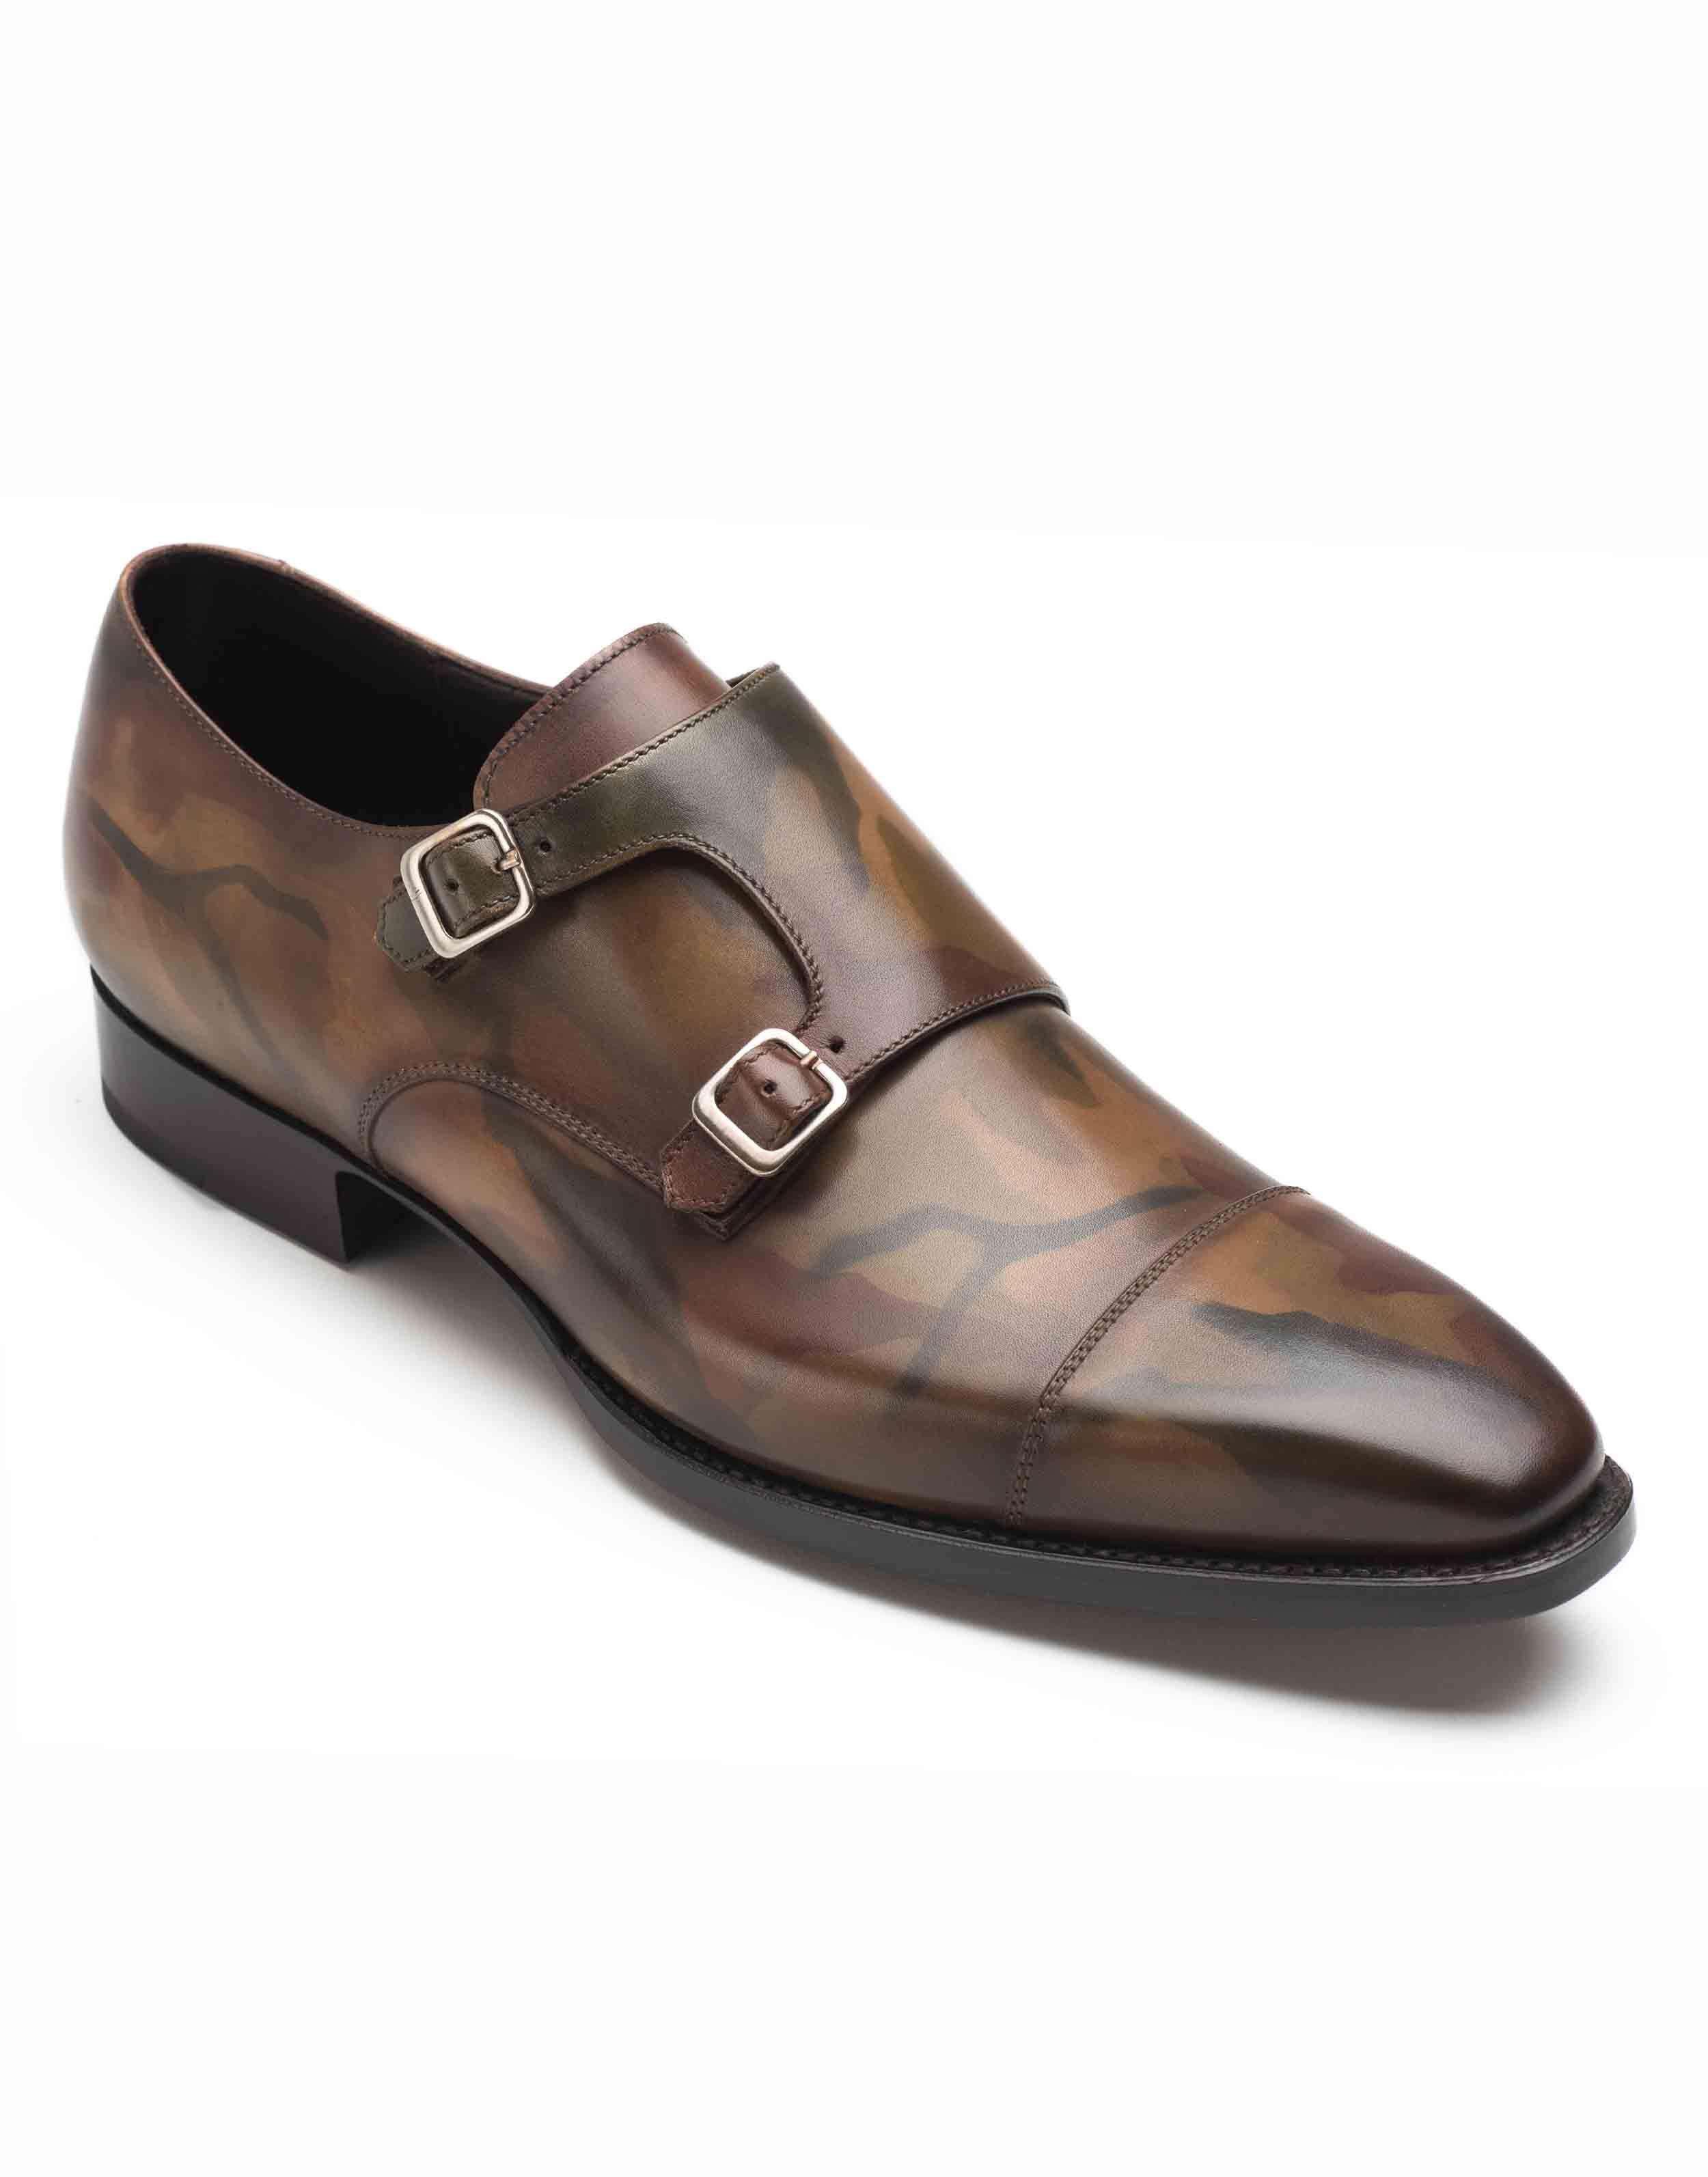 DOUBLE MONK STRAP SHOE2